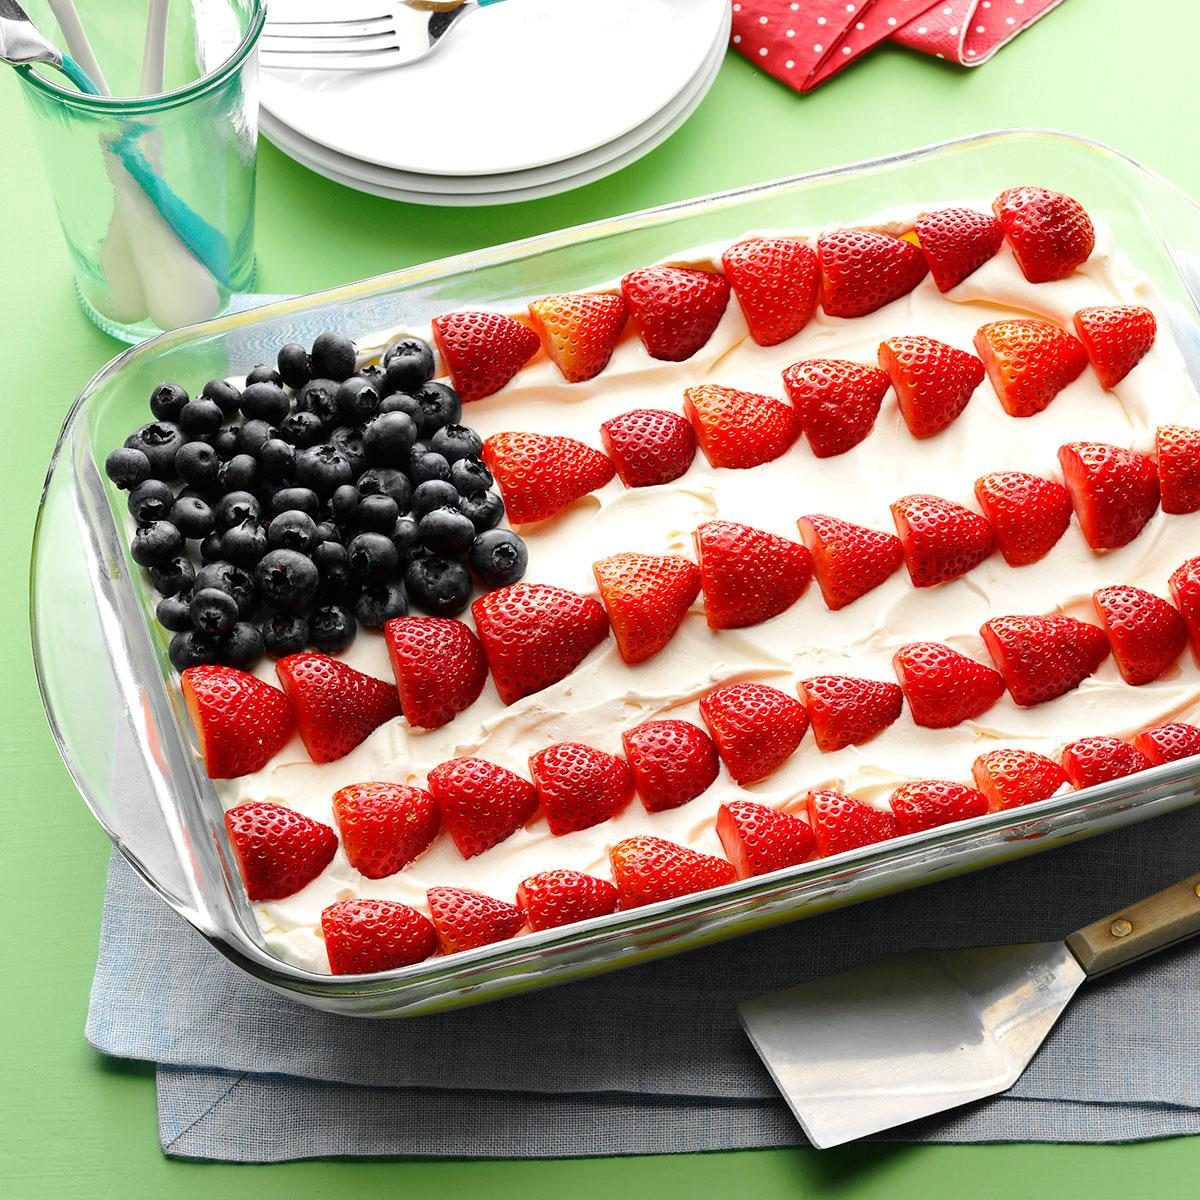 Picture-Perfect Desserts For The 4th Of July